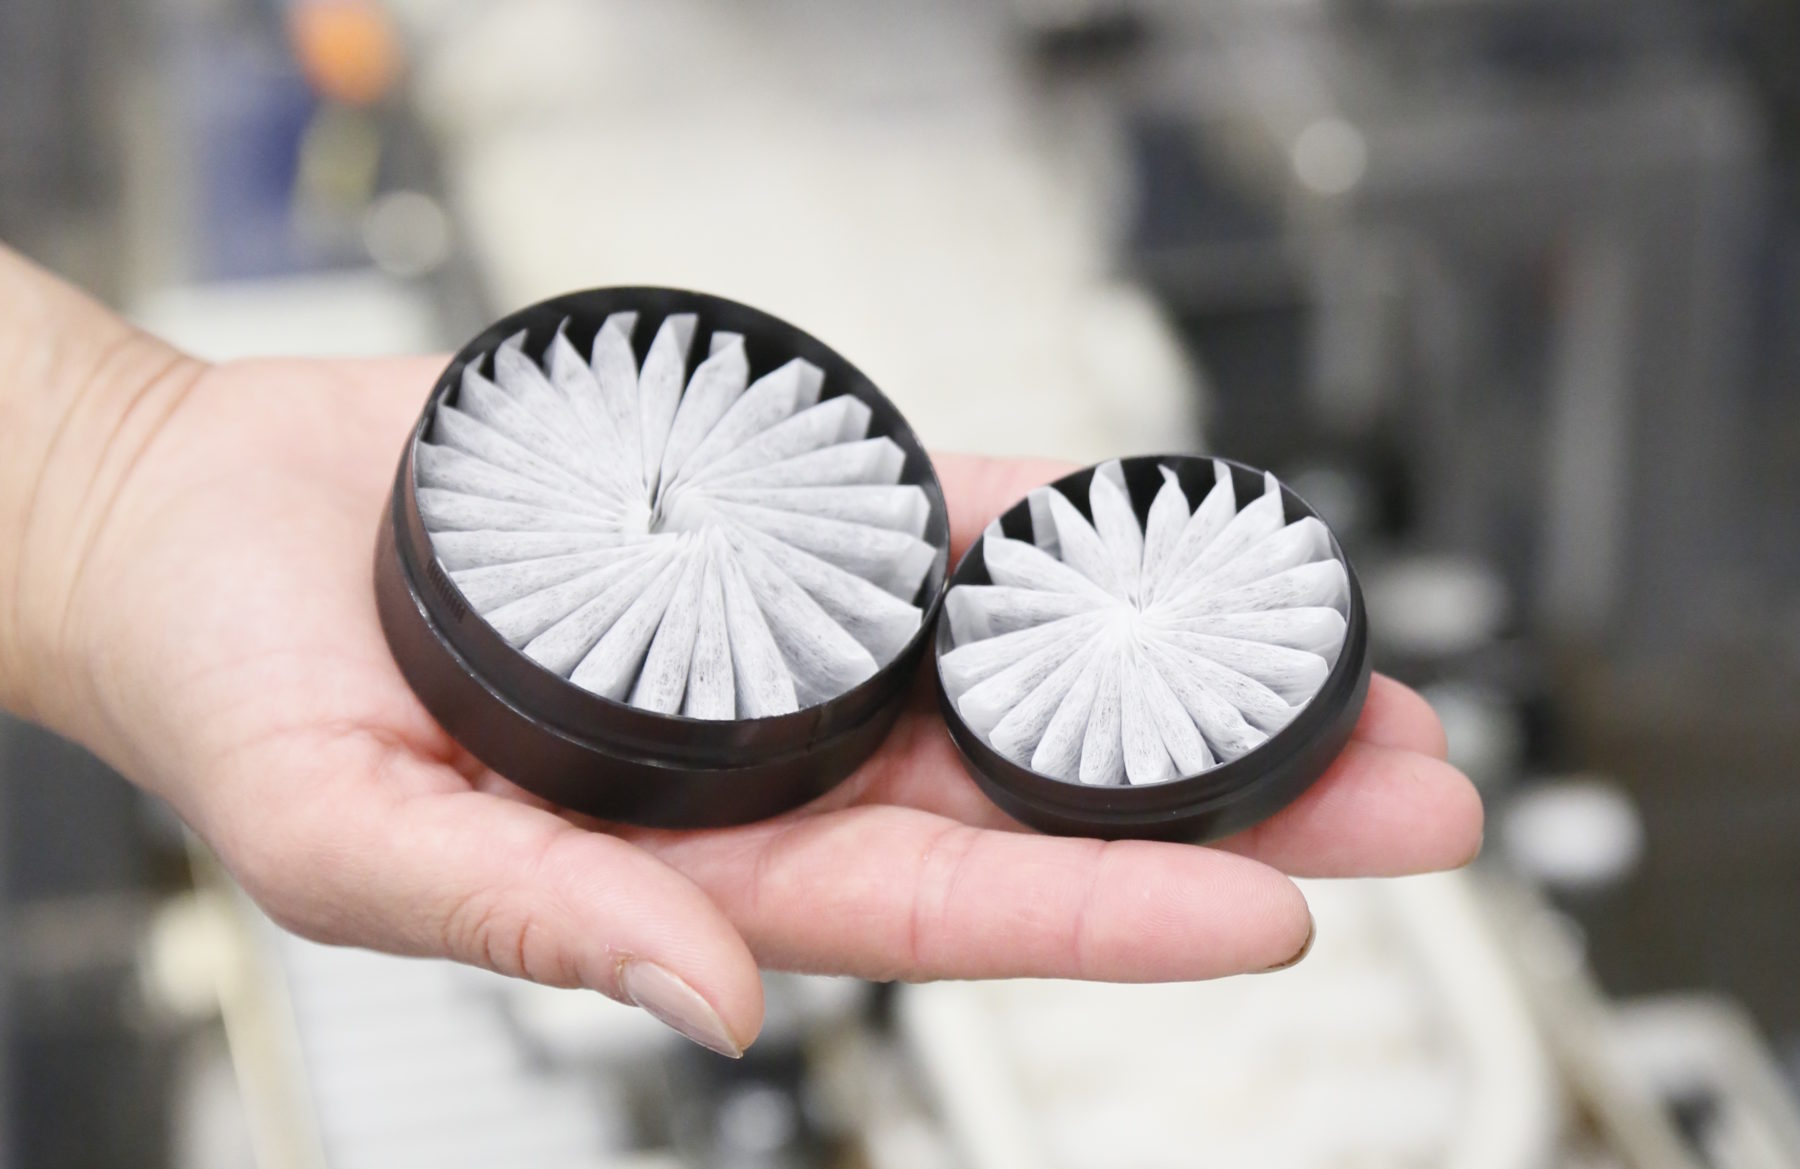 Fda Affirms Snus As Harm Reduction Does This Signal Hope